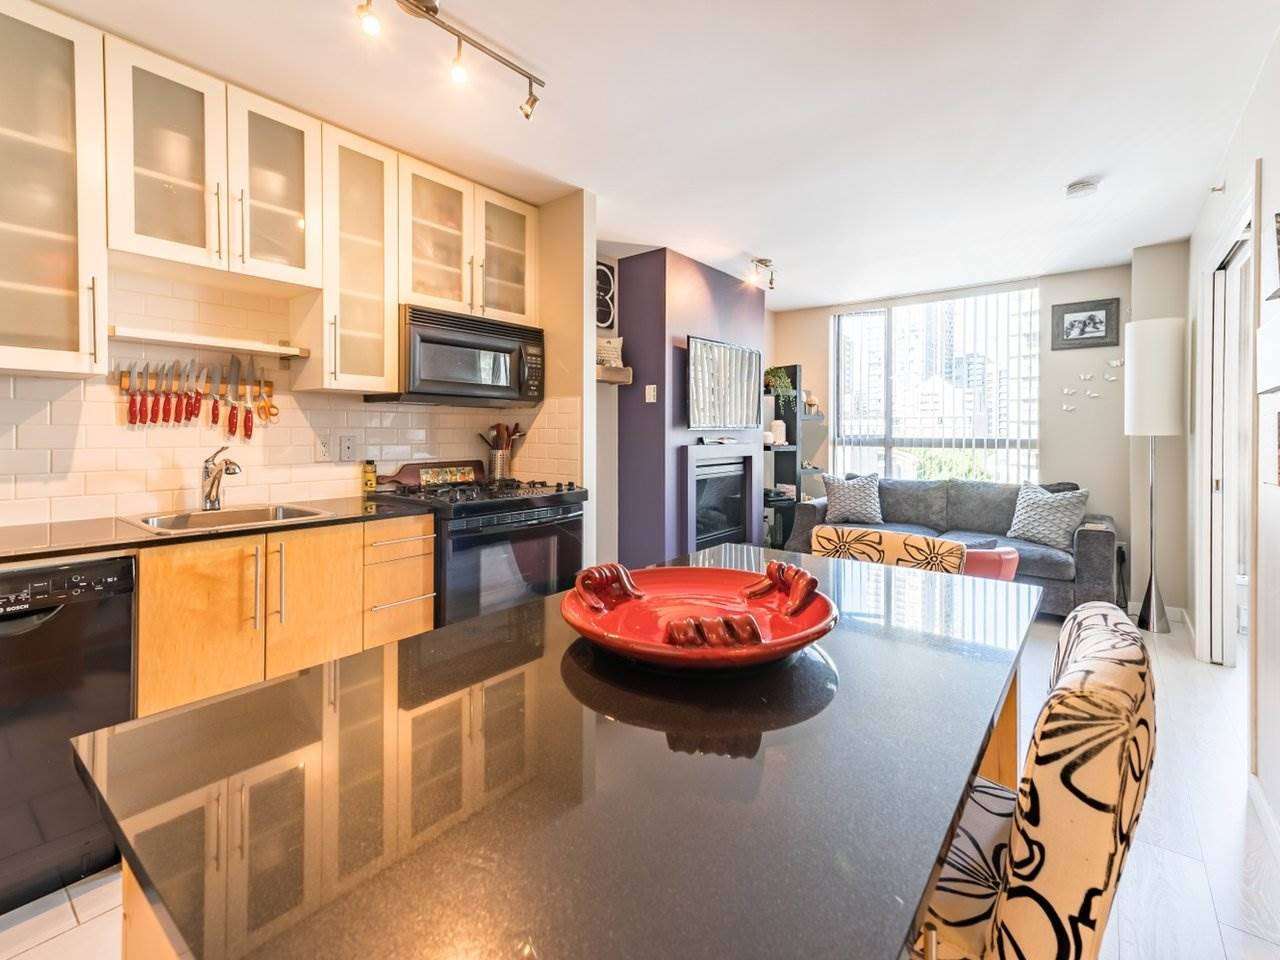 809 1225 RICHARDS STREET - Downtown VW Apartment/Condo for sale, 1 Bedroom (R2490805) - #1